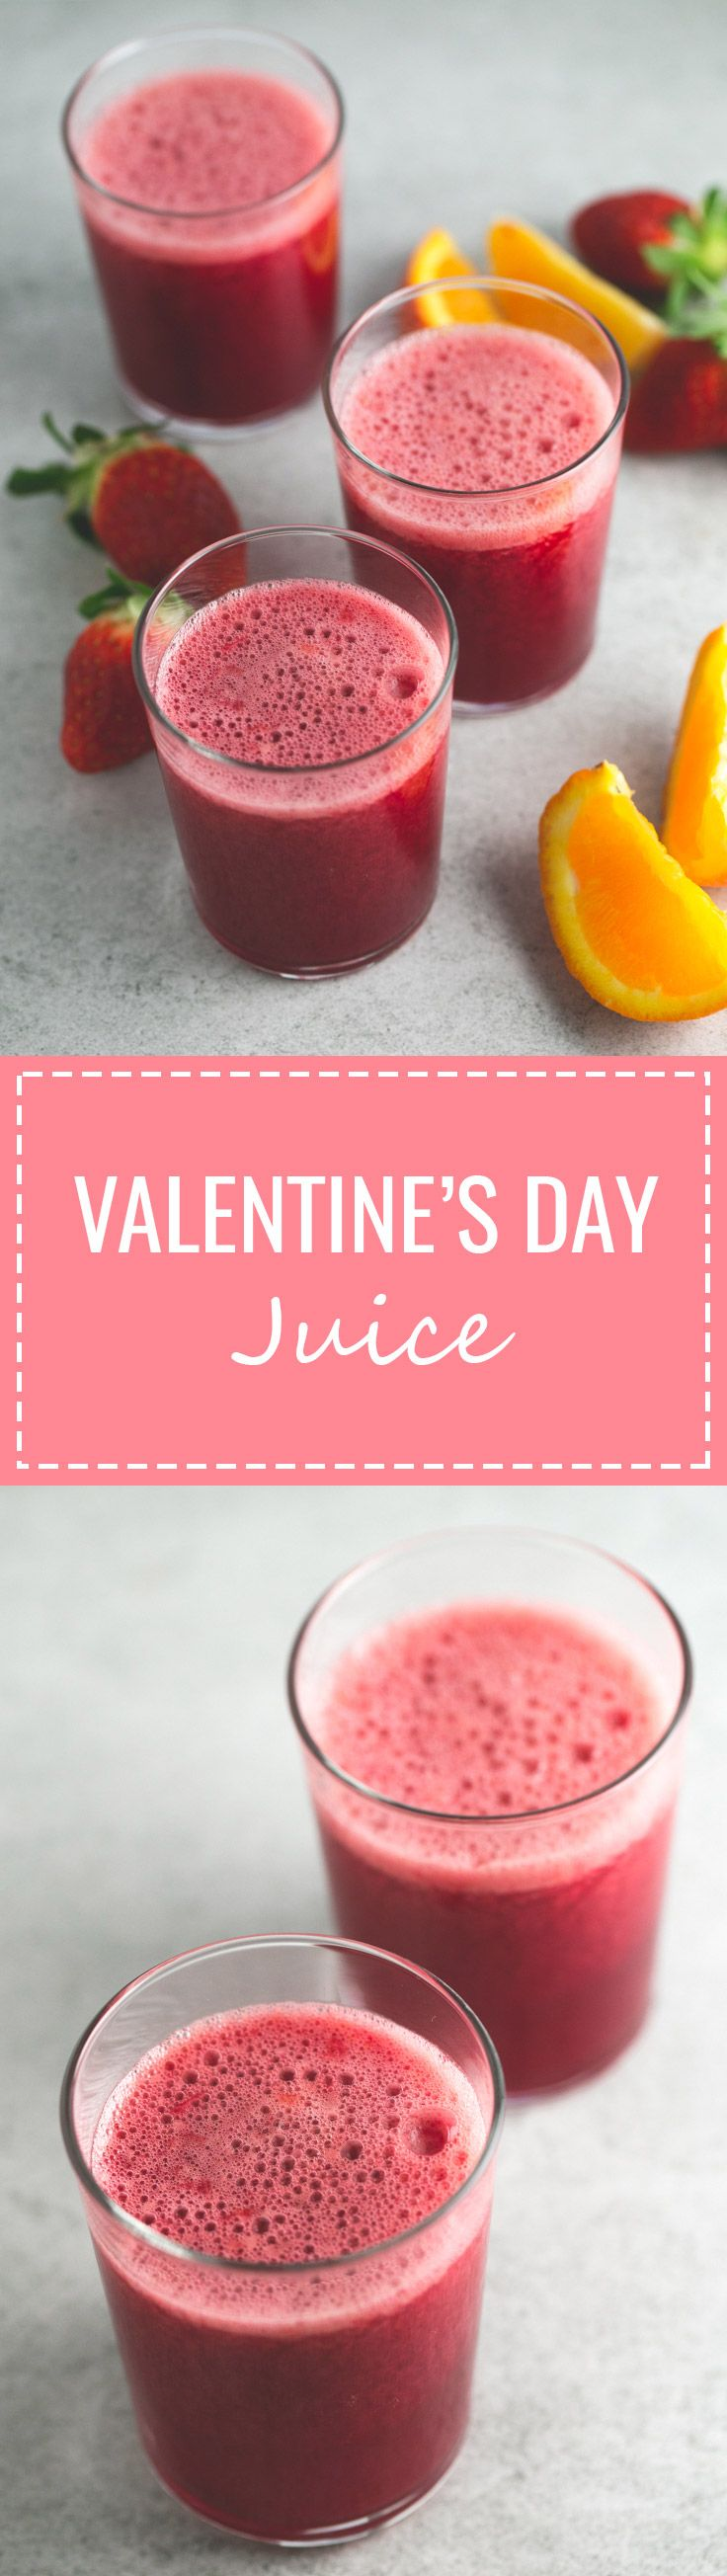 Valentine's day juice - This Valentine's Day juice has a beautiful and vibrant color that is perfect for this special occasion. It's the perfect drink to celebrate the love.